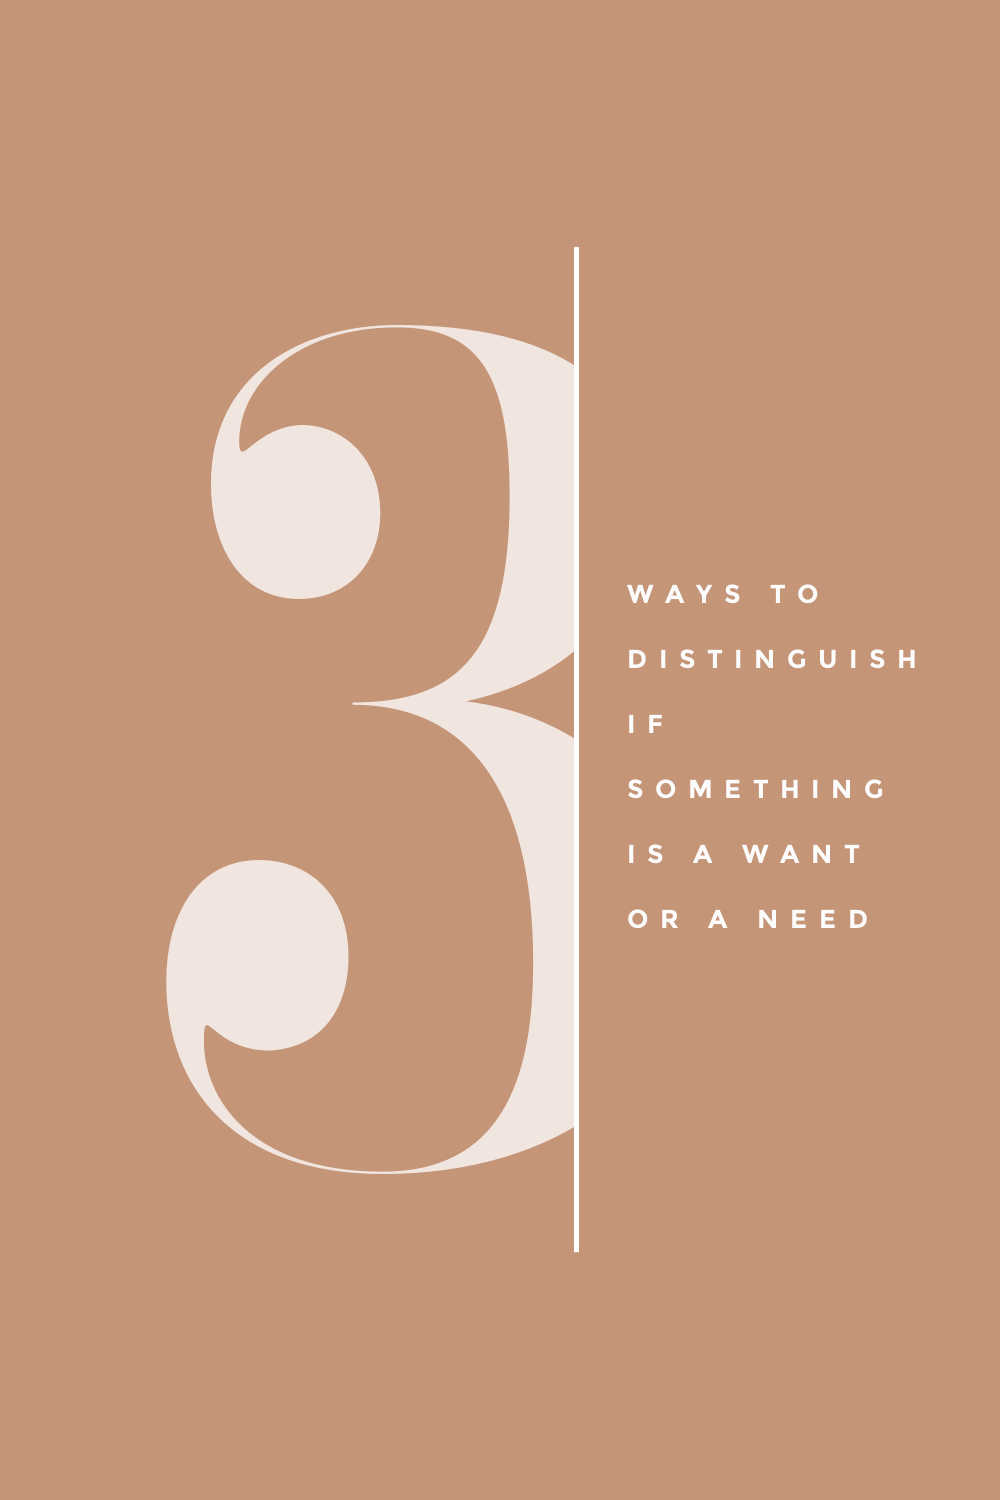 3 ways to distinguish want or a need